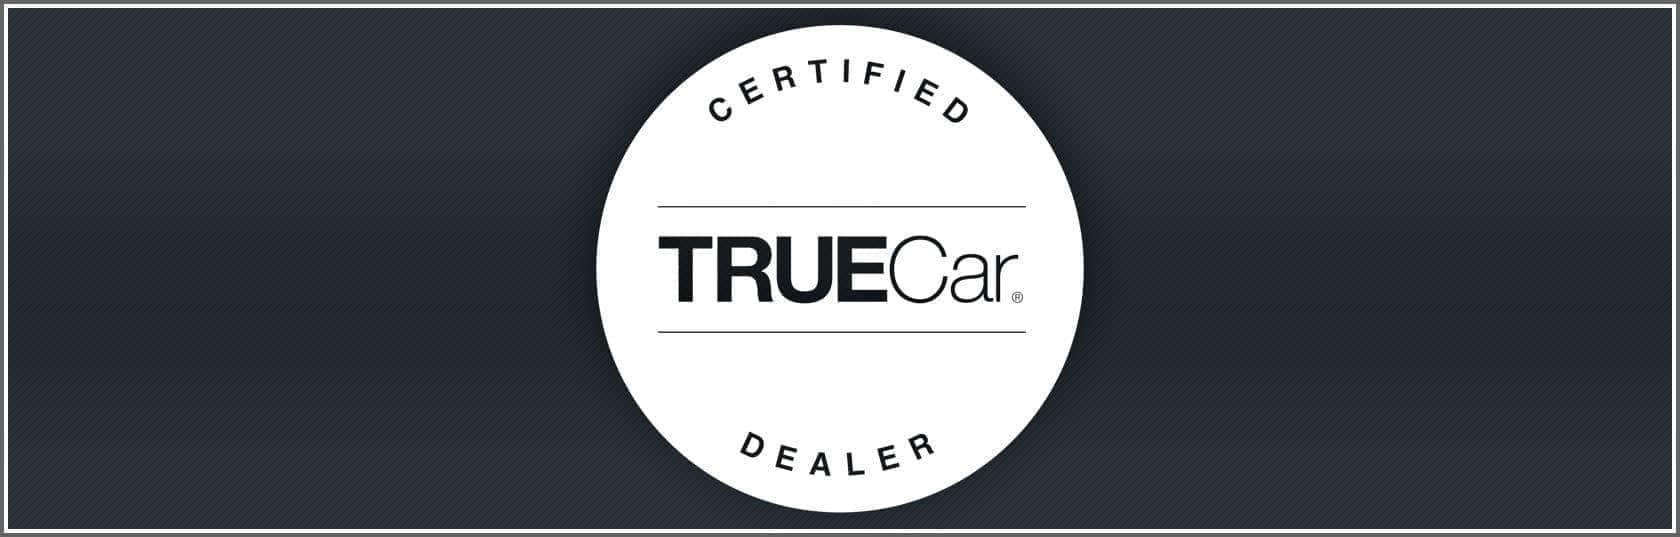 Certified True Car Dealer